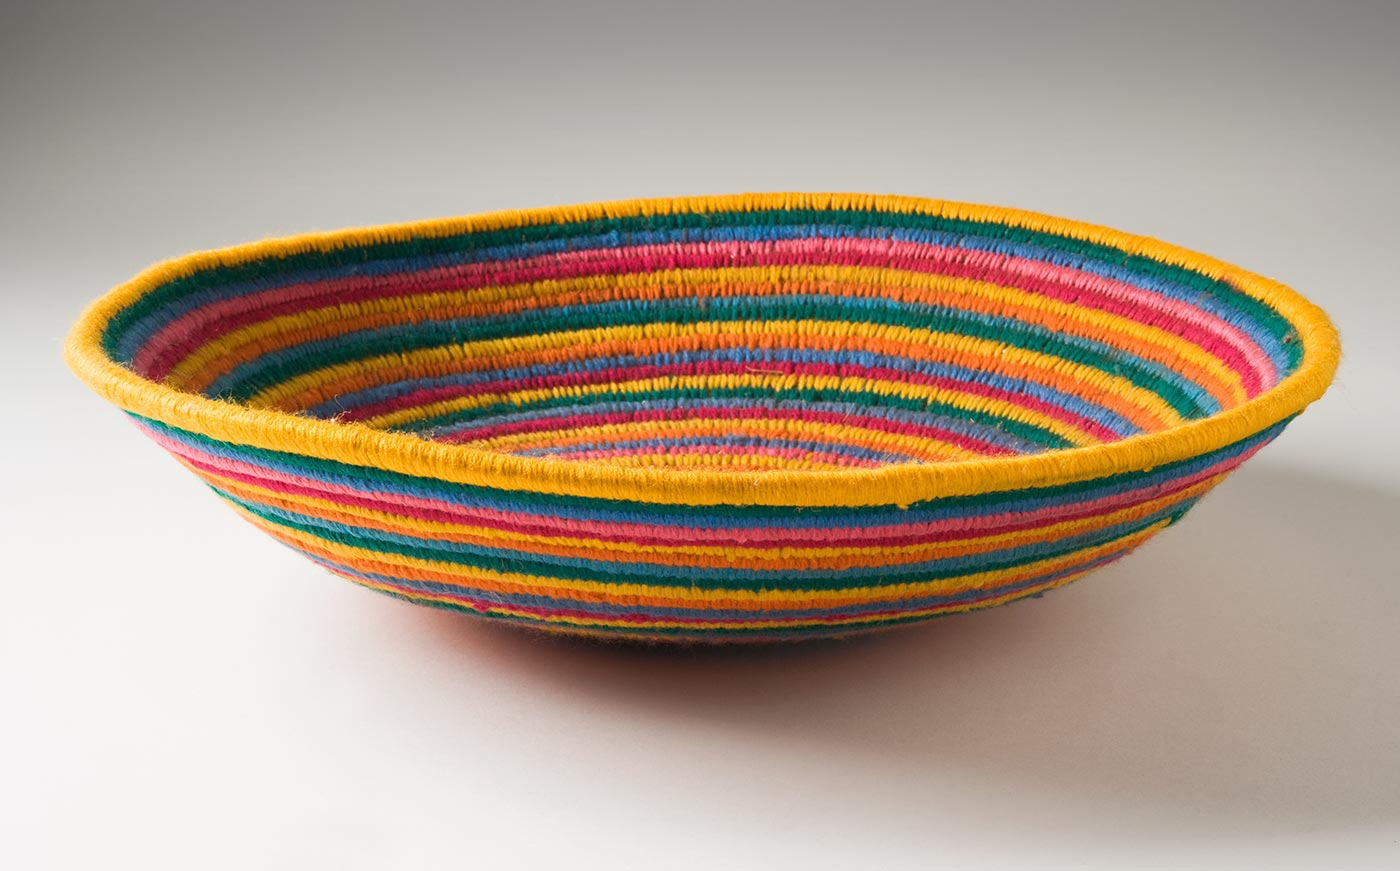 A multi-coloured circular coiled bowl-shaped basket made of yarn and plant fibre. The centre of the basket is in green yarn followed by horizontal stripes of yarn in purple, blue, pink, dark pink, orange and yellow. - click to view larger image